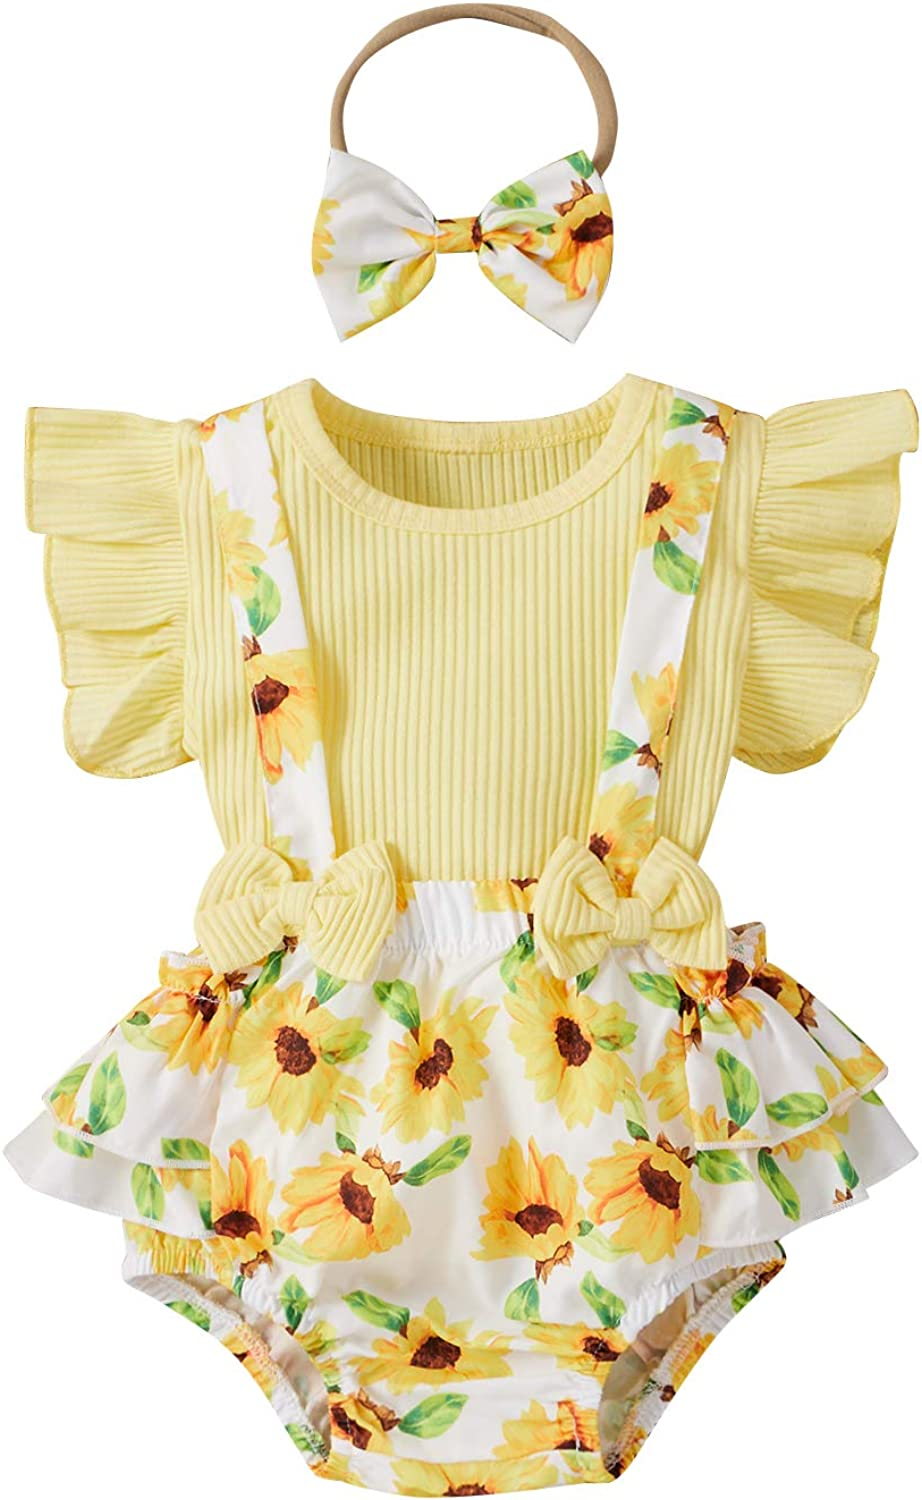 Newborn Baby Girl Summer Clothes Ruffle Sleeve Ribbed T-Shirt Top Floral Suspender Shorts Headband 3Pcs Outfit